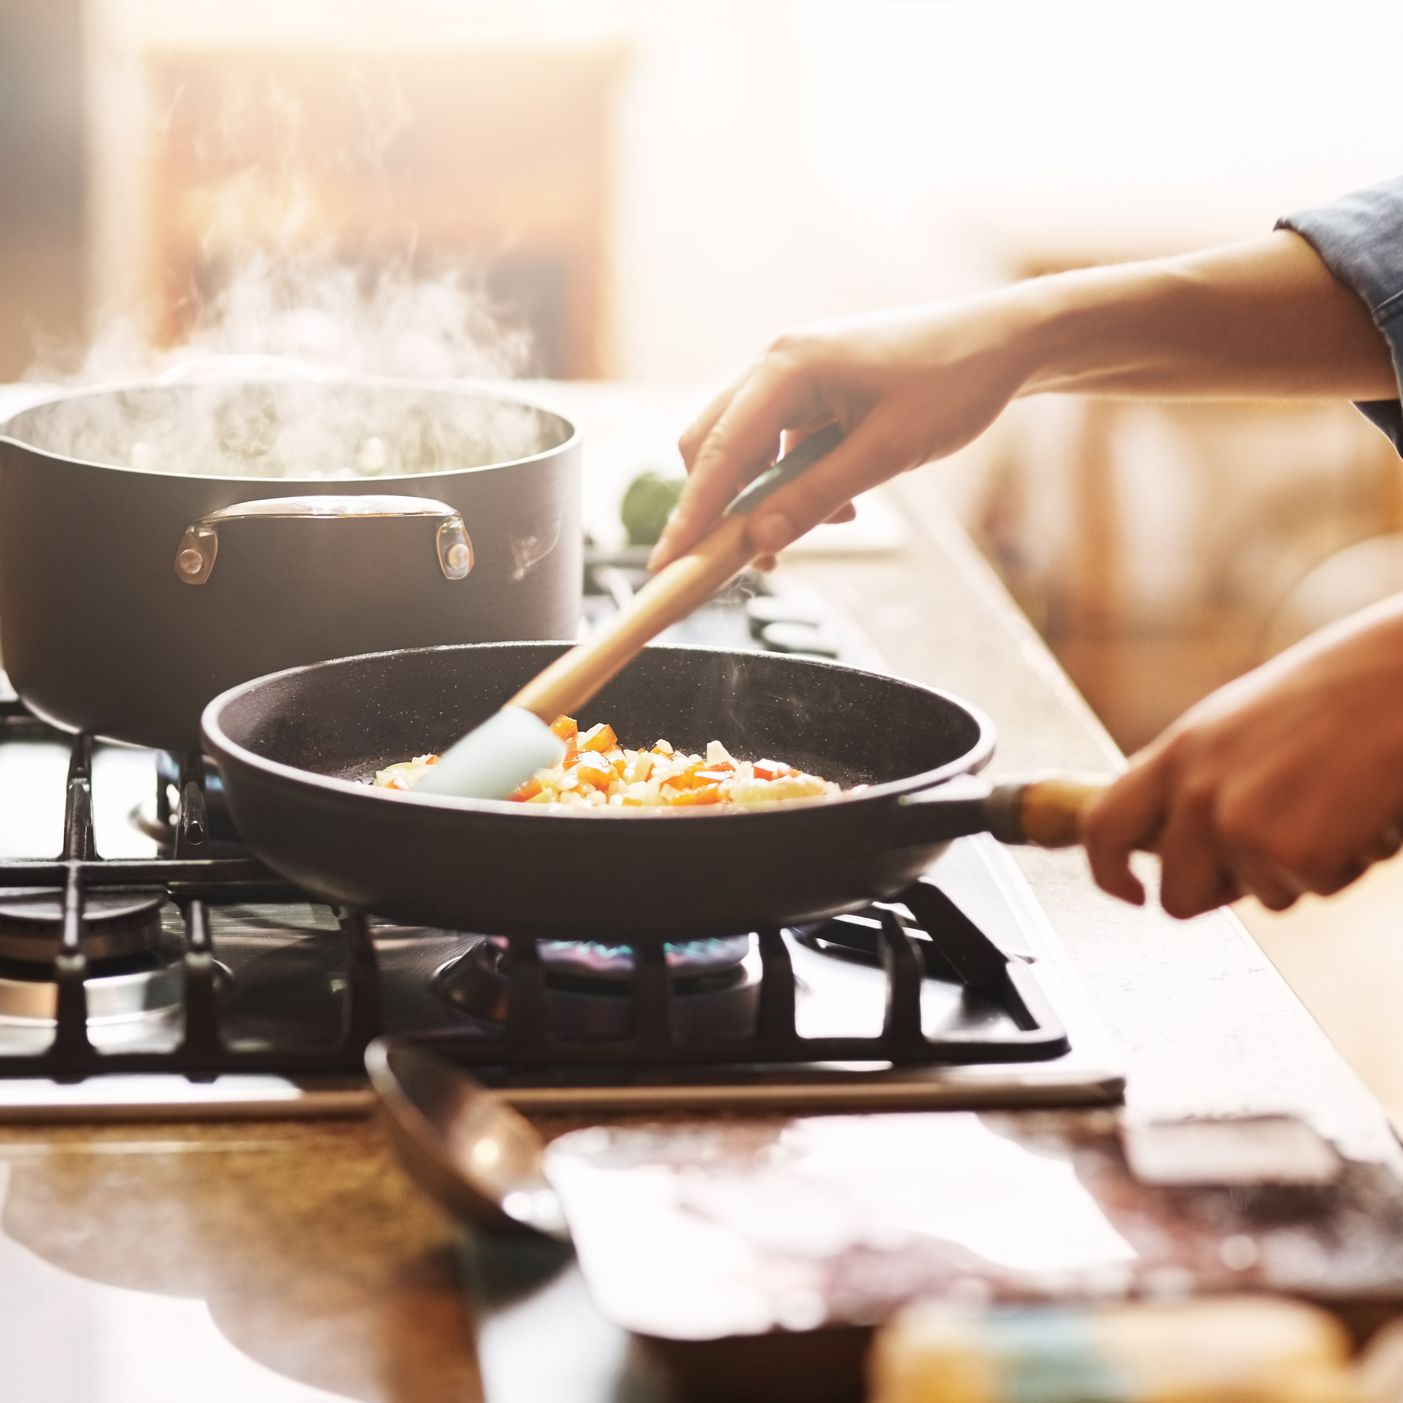 How to Properly Dispose of Used Cooking Oil (And Save Your Drain)